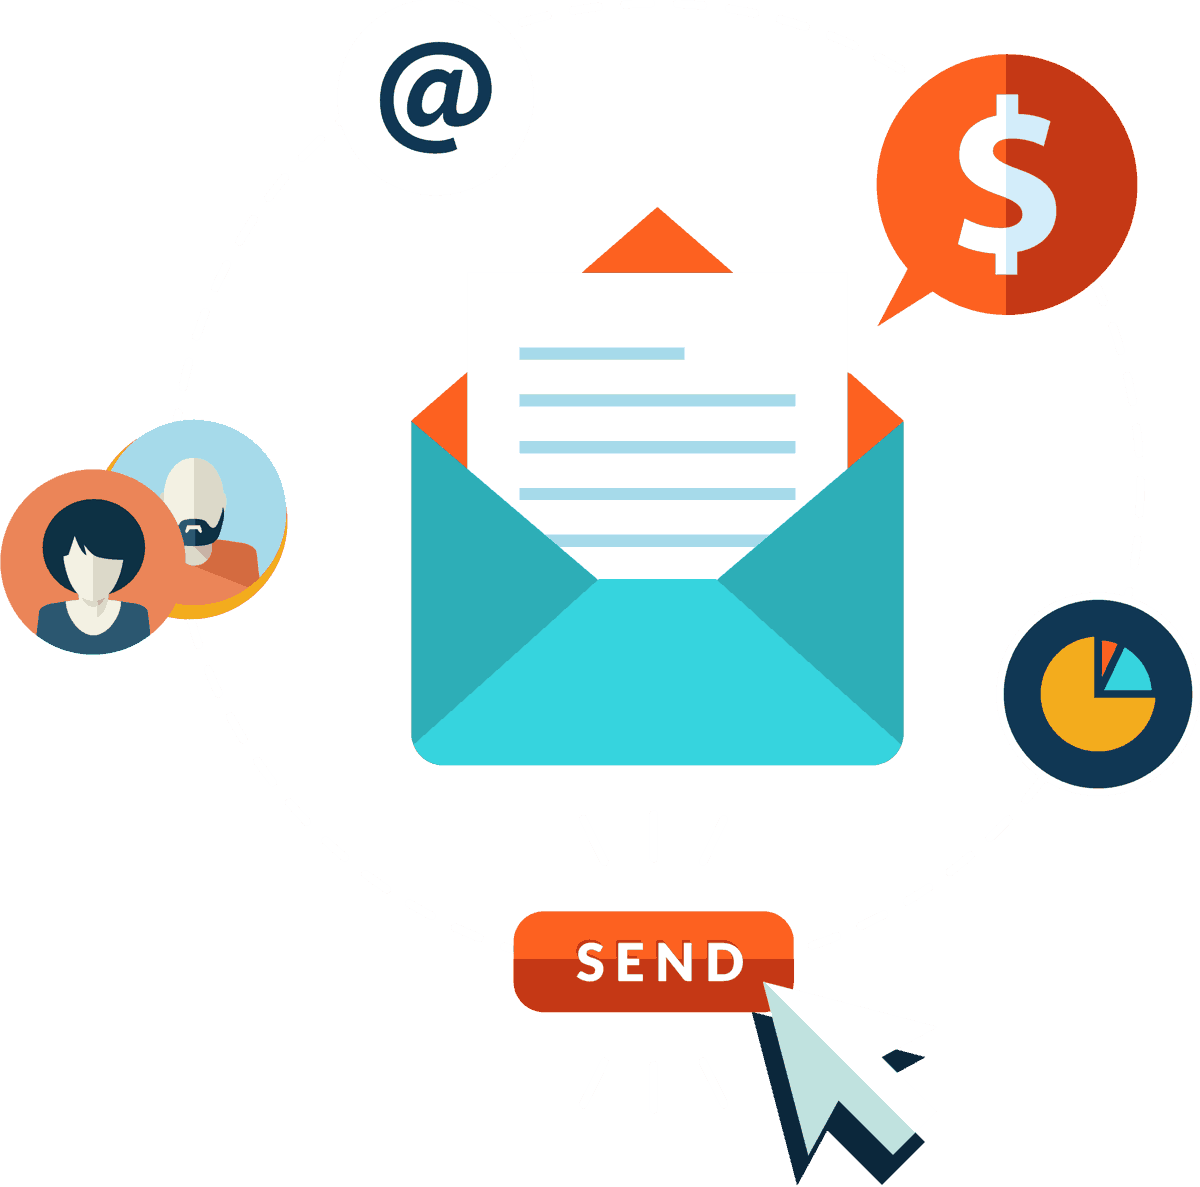 hero-email-marketing-02